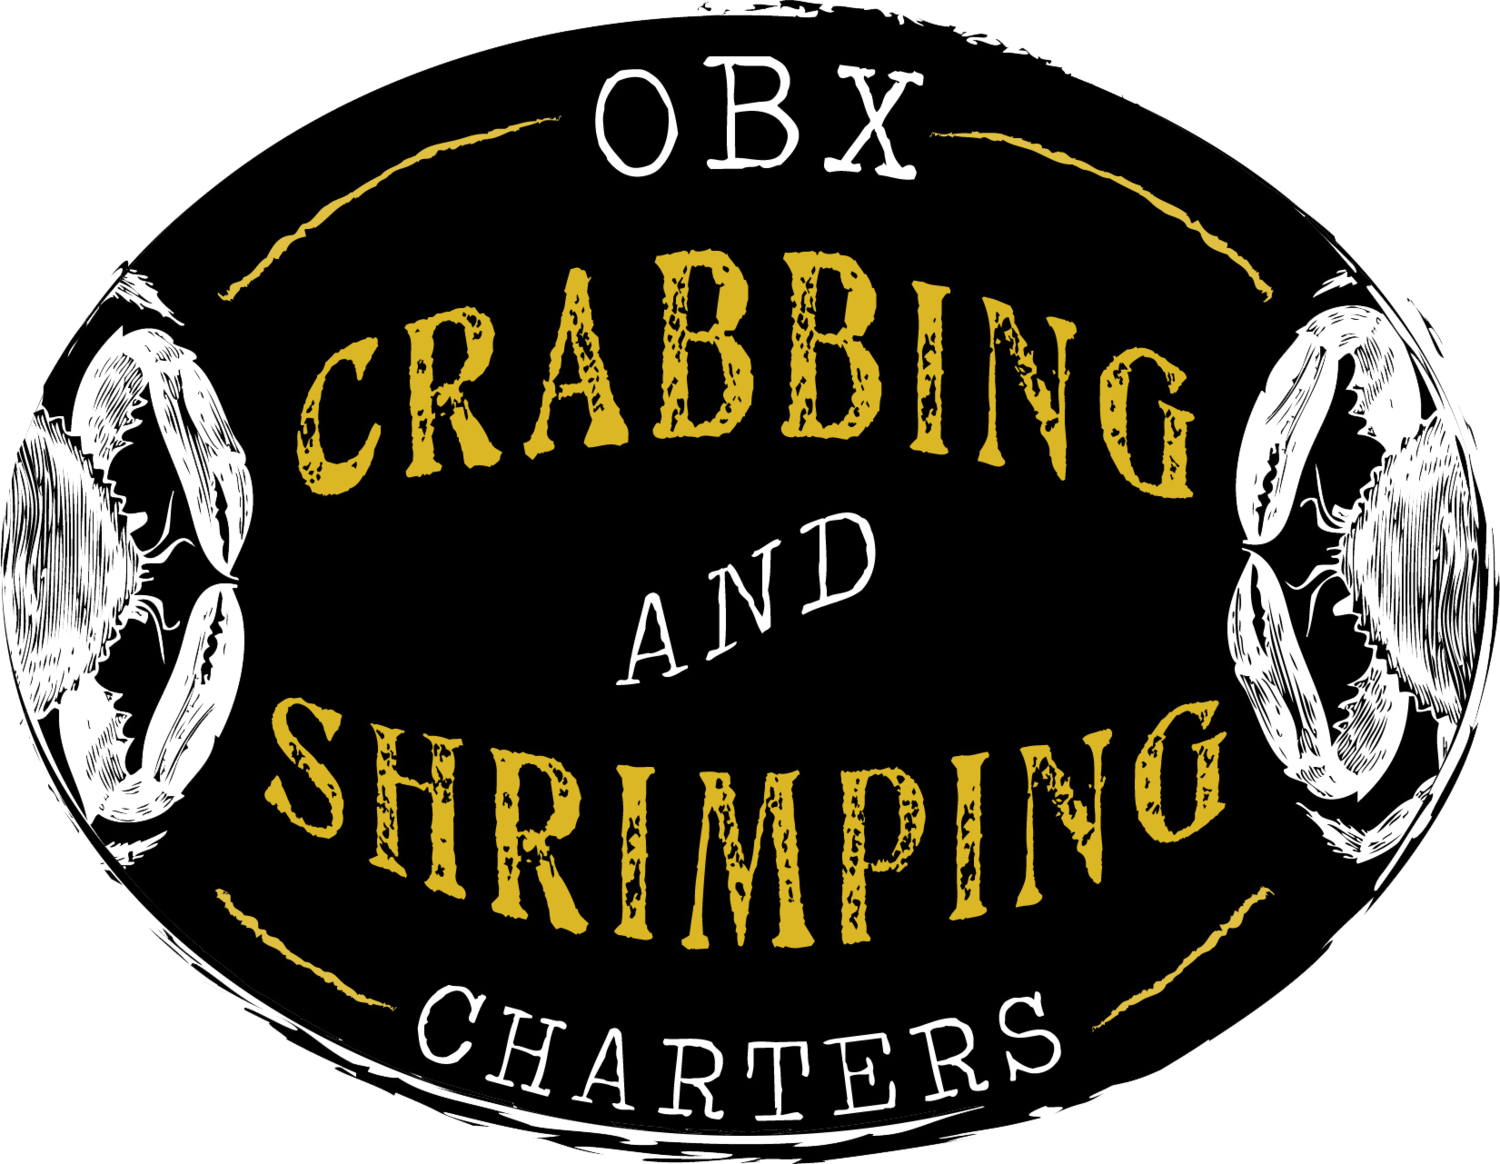 OBX Crabbing & Shrimping Charters